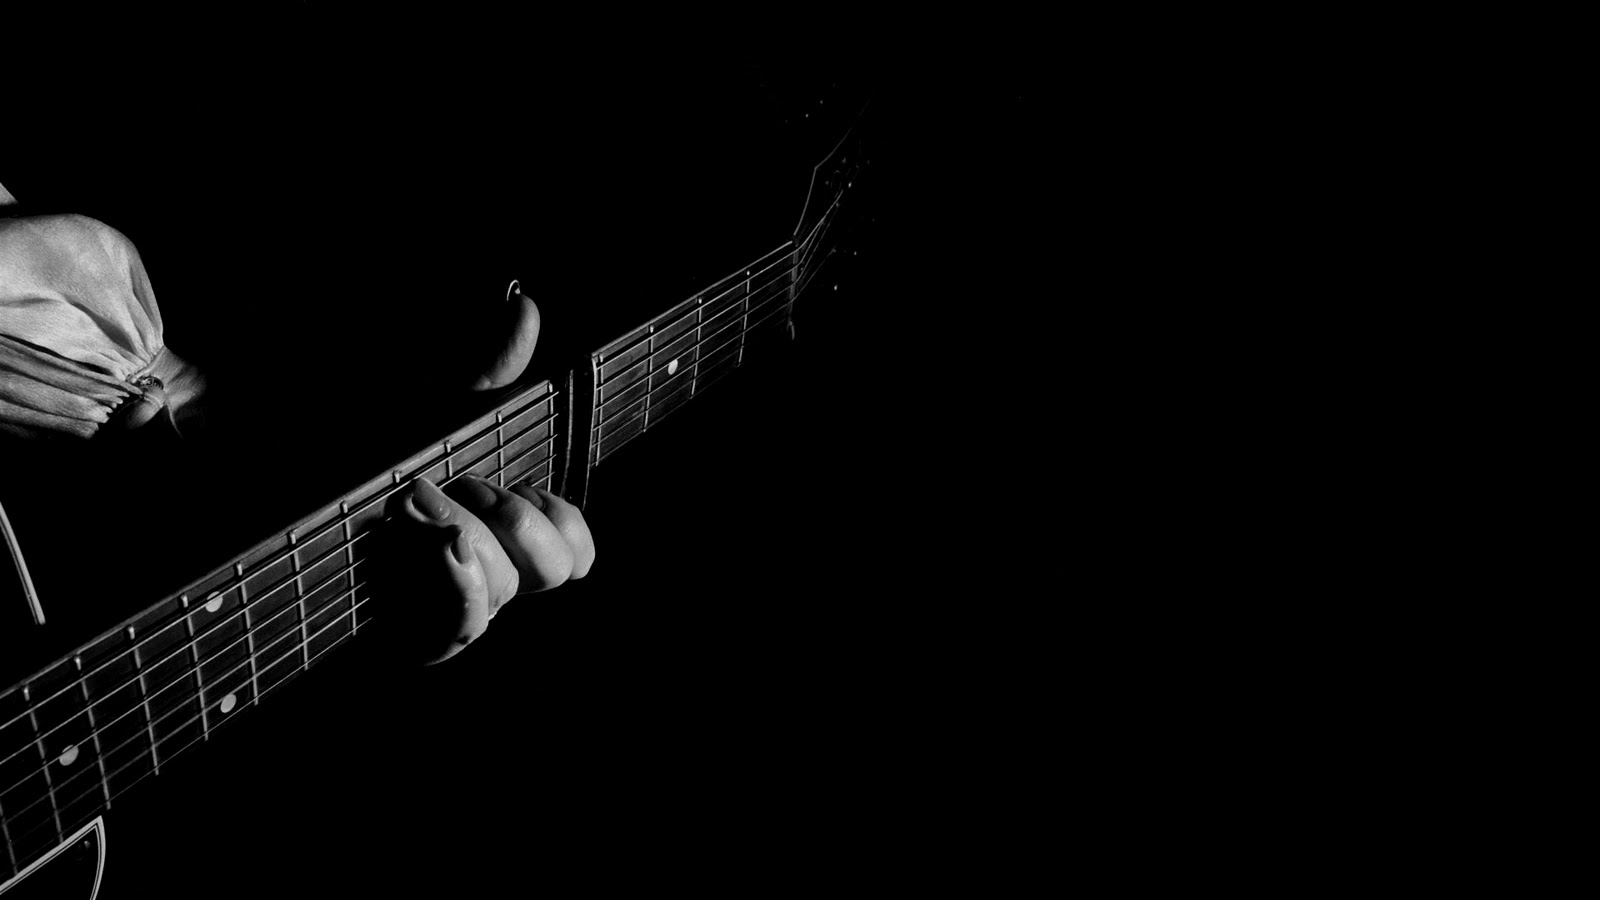 3d Wallpaper Download For Windows 10 Guitar Wallpaper Backgrounds 3963 Wallpaper Walldiskpaper